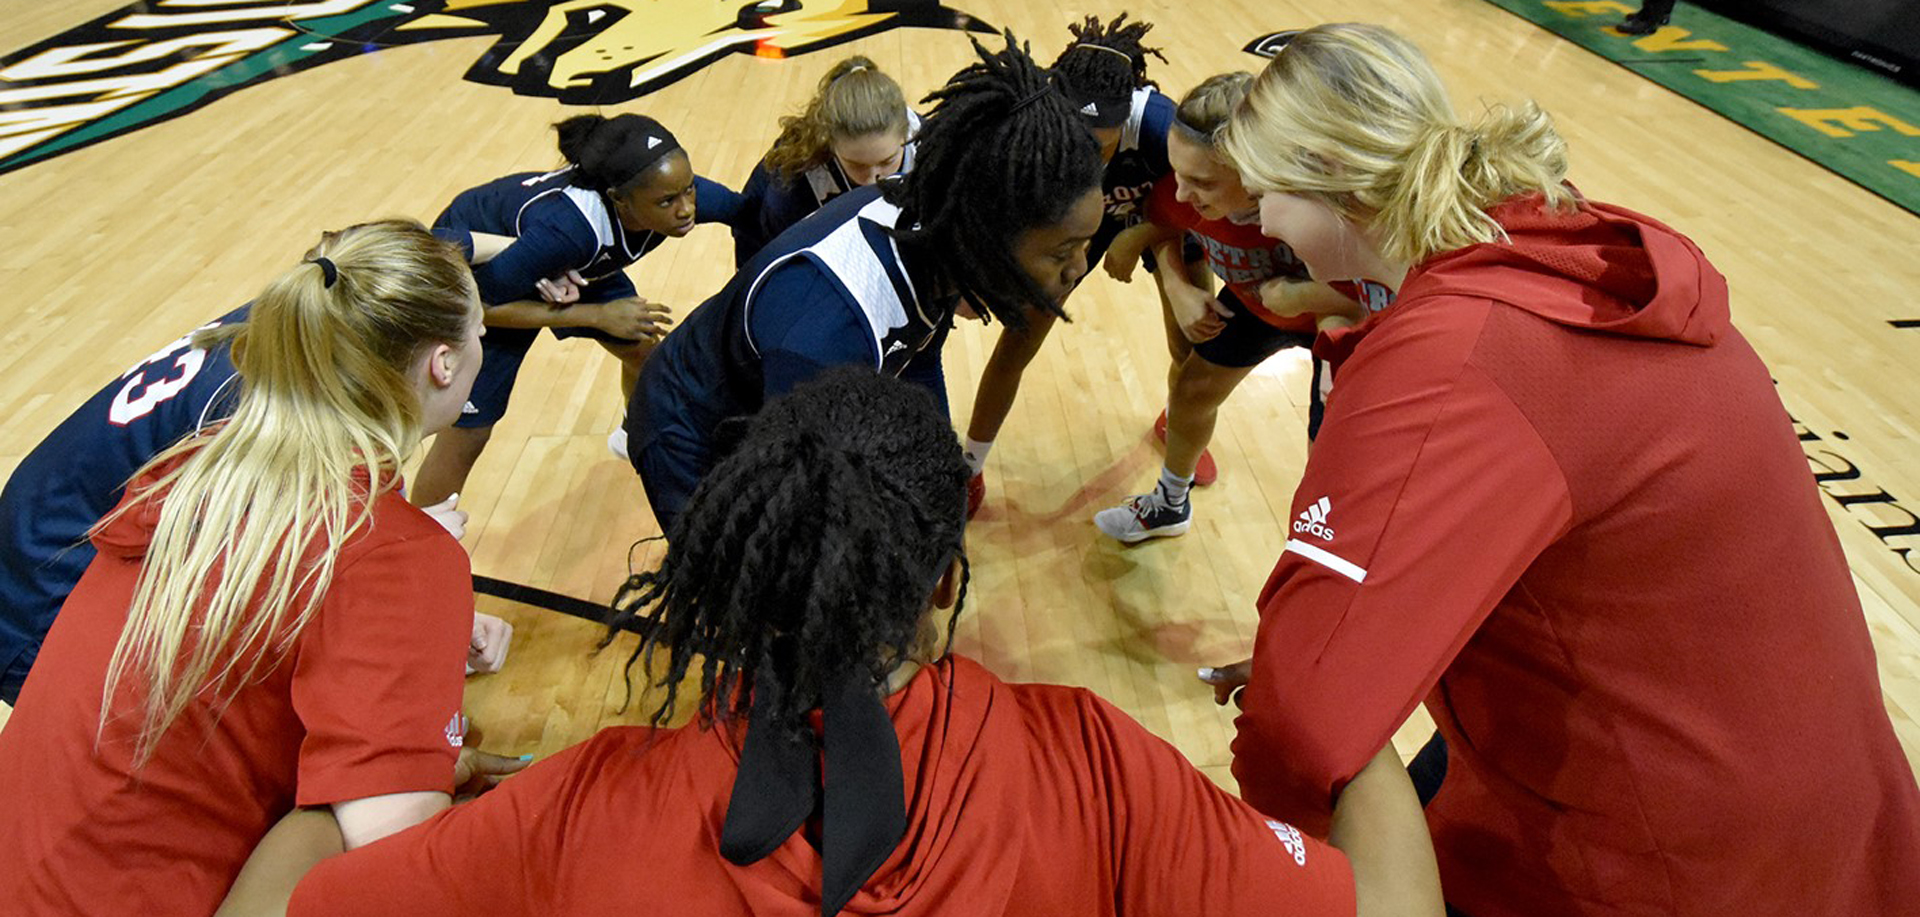 Women's basketball game huddle